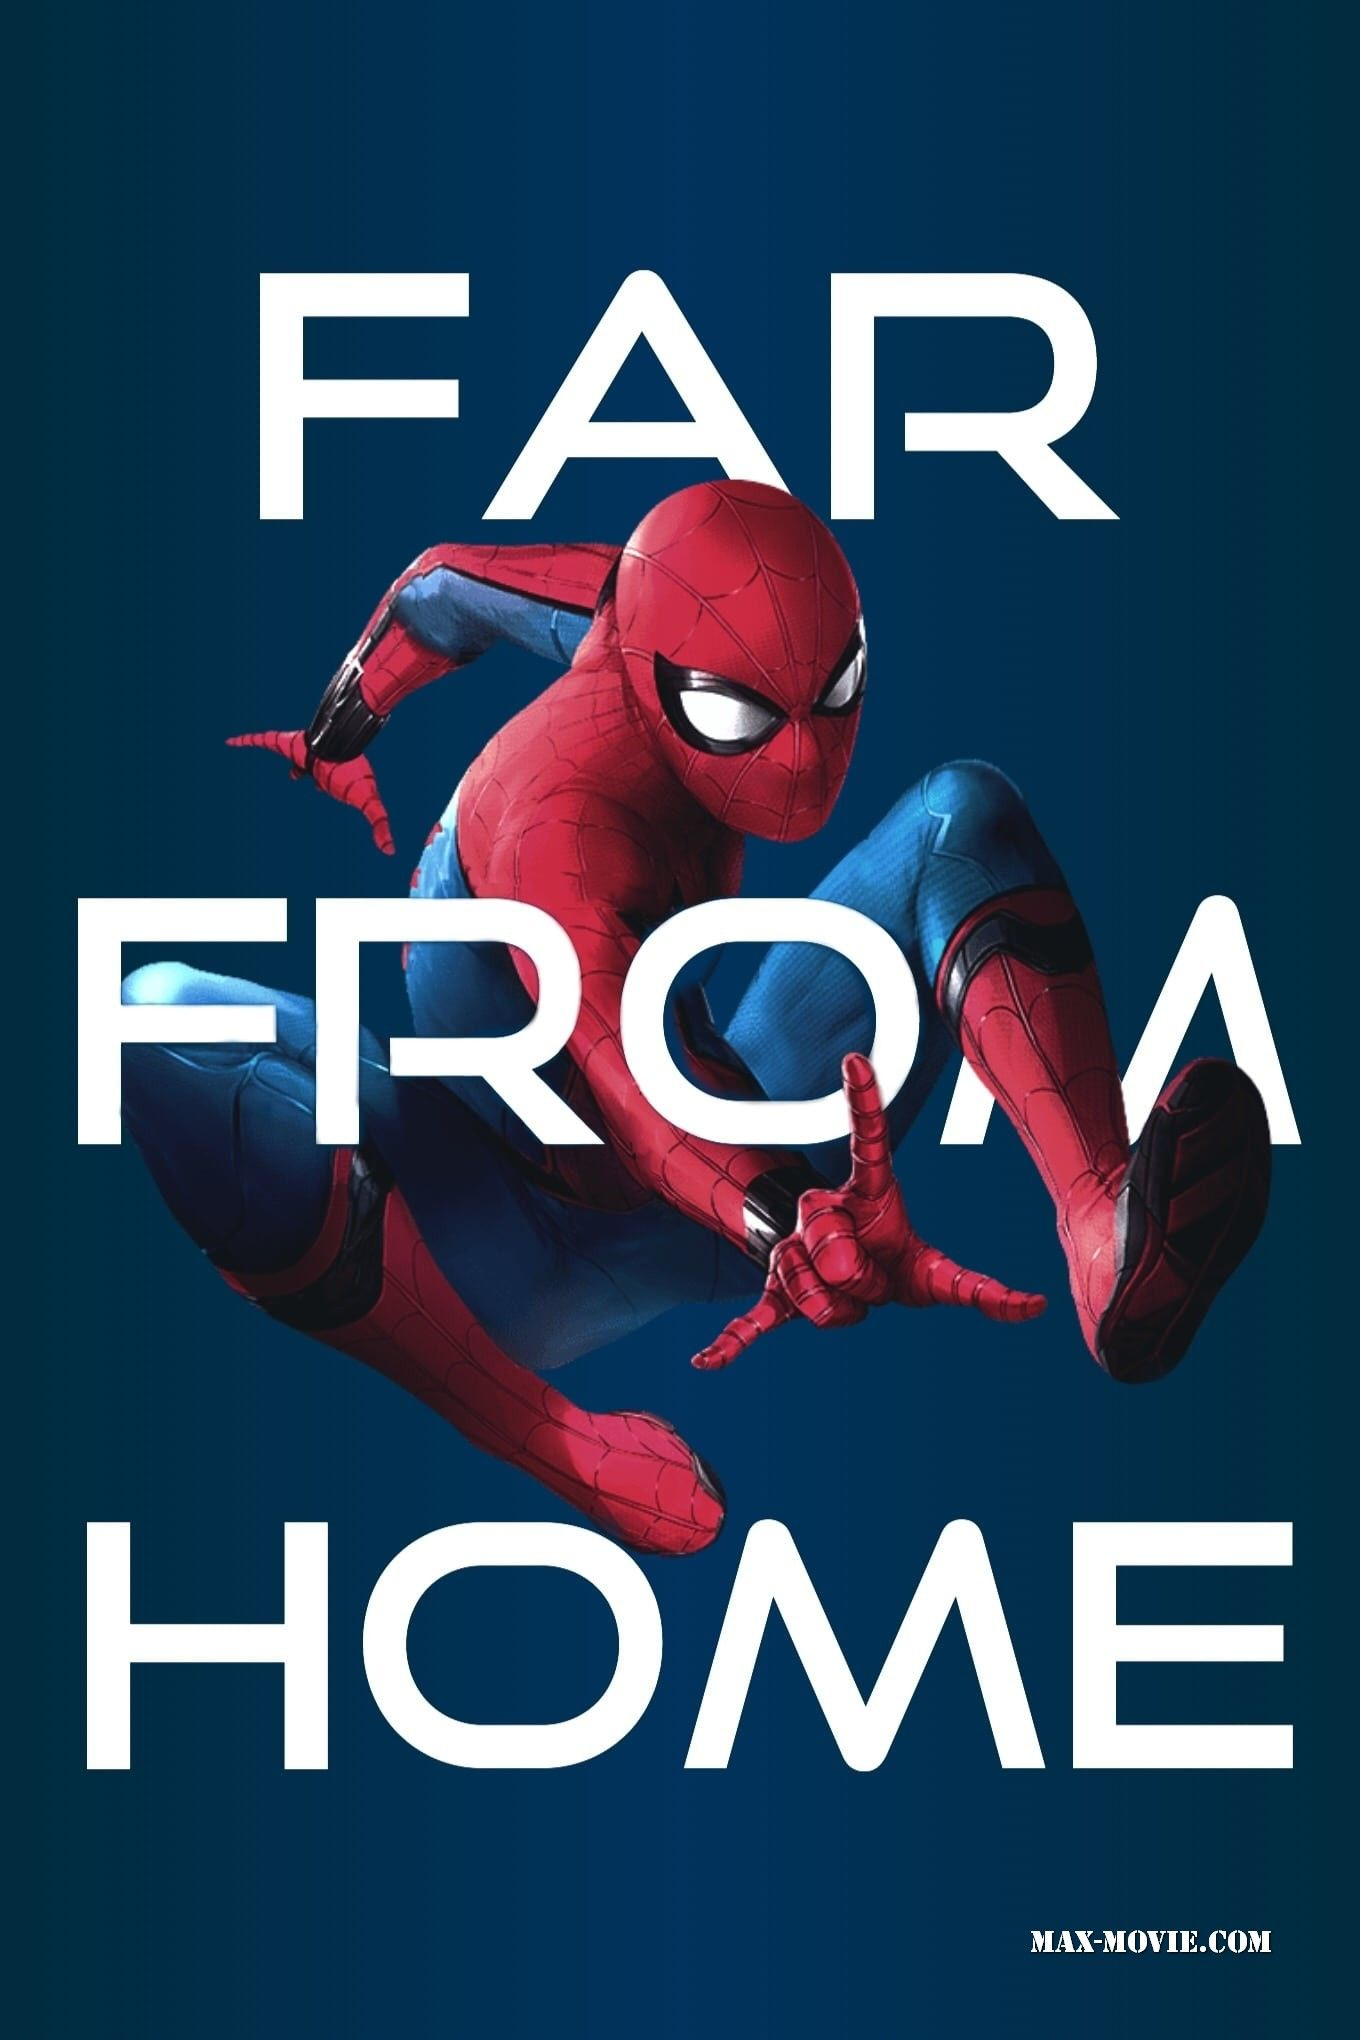 Ver Hd Spider Man Far From Home 2019 Pelicula Subtitulada En Hd Online Completa Full Movies Online Free Spiderman Full Movies